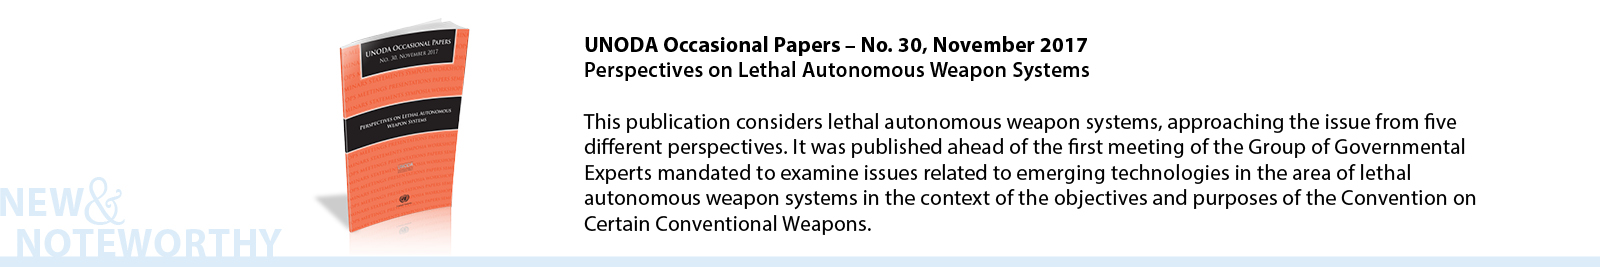 UNODA Occasional Papers – No. 30, November 2017 - Perspectives on Lethal Autonomous Weapon Systems - This publication considers lethal autonomous weapon systems, approaching the issue from five different perspectives. It was published ahead of the first meeting of the Group of Governmental Experts mandated to examine issues related to emerging technologies in the area of lethal autonomous weapon systems in the context of the objectives and purposes of the Convention on Certain Conventional Weapons.